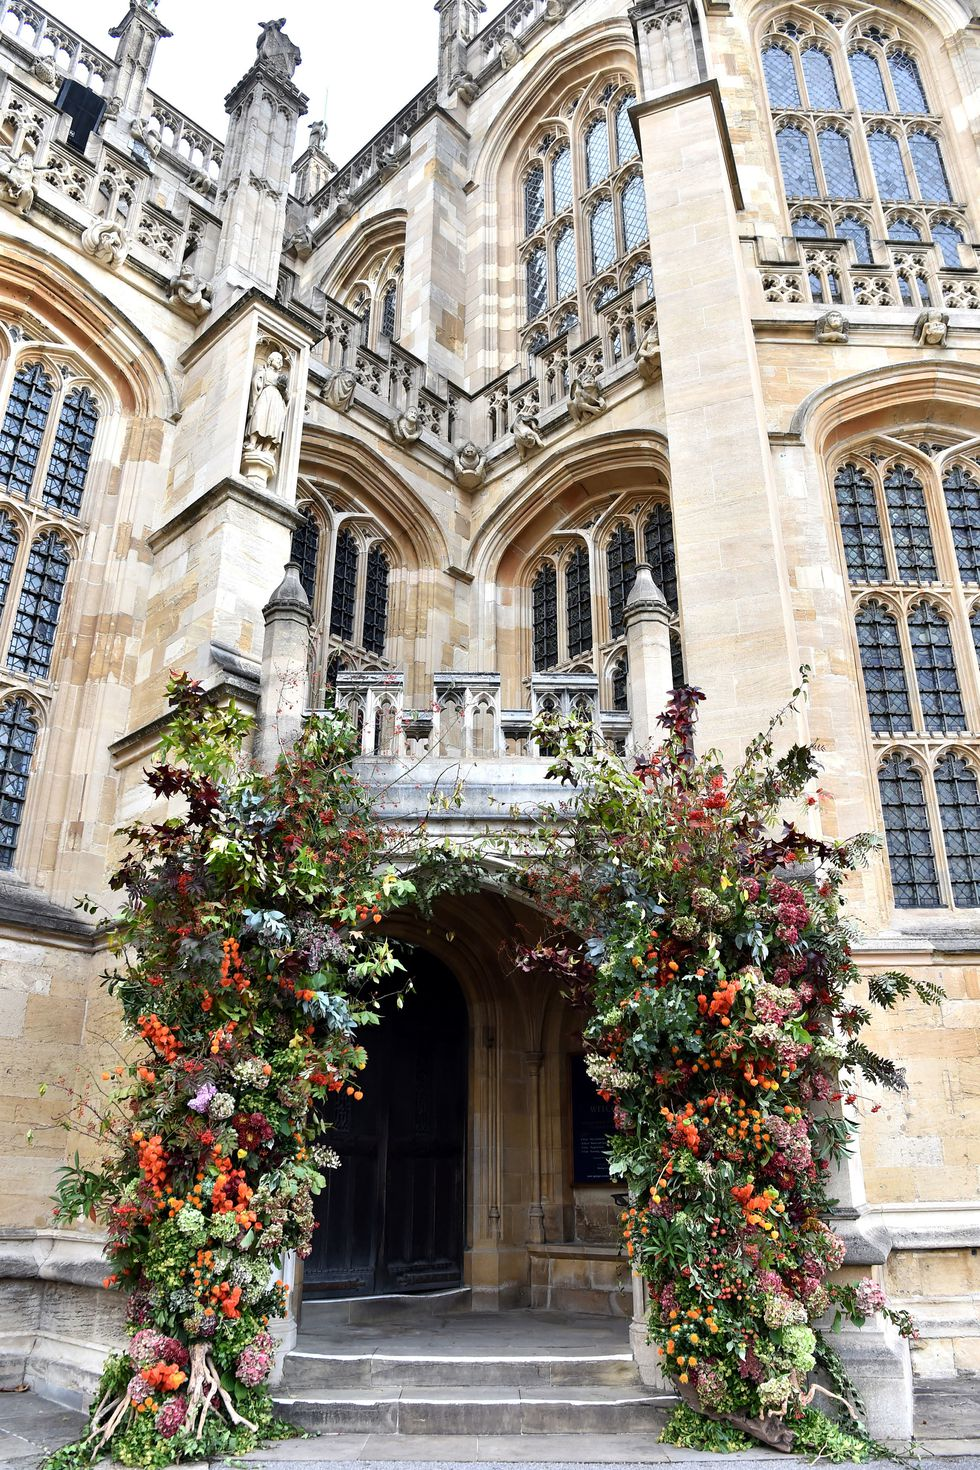 St George's chapel royal wedding flowers